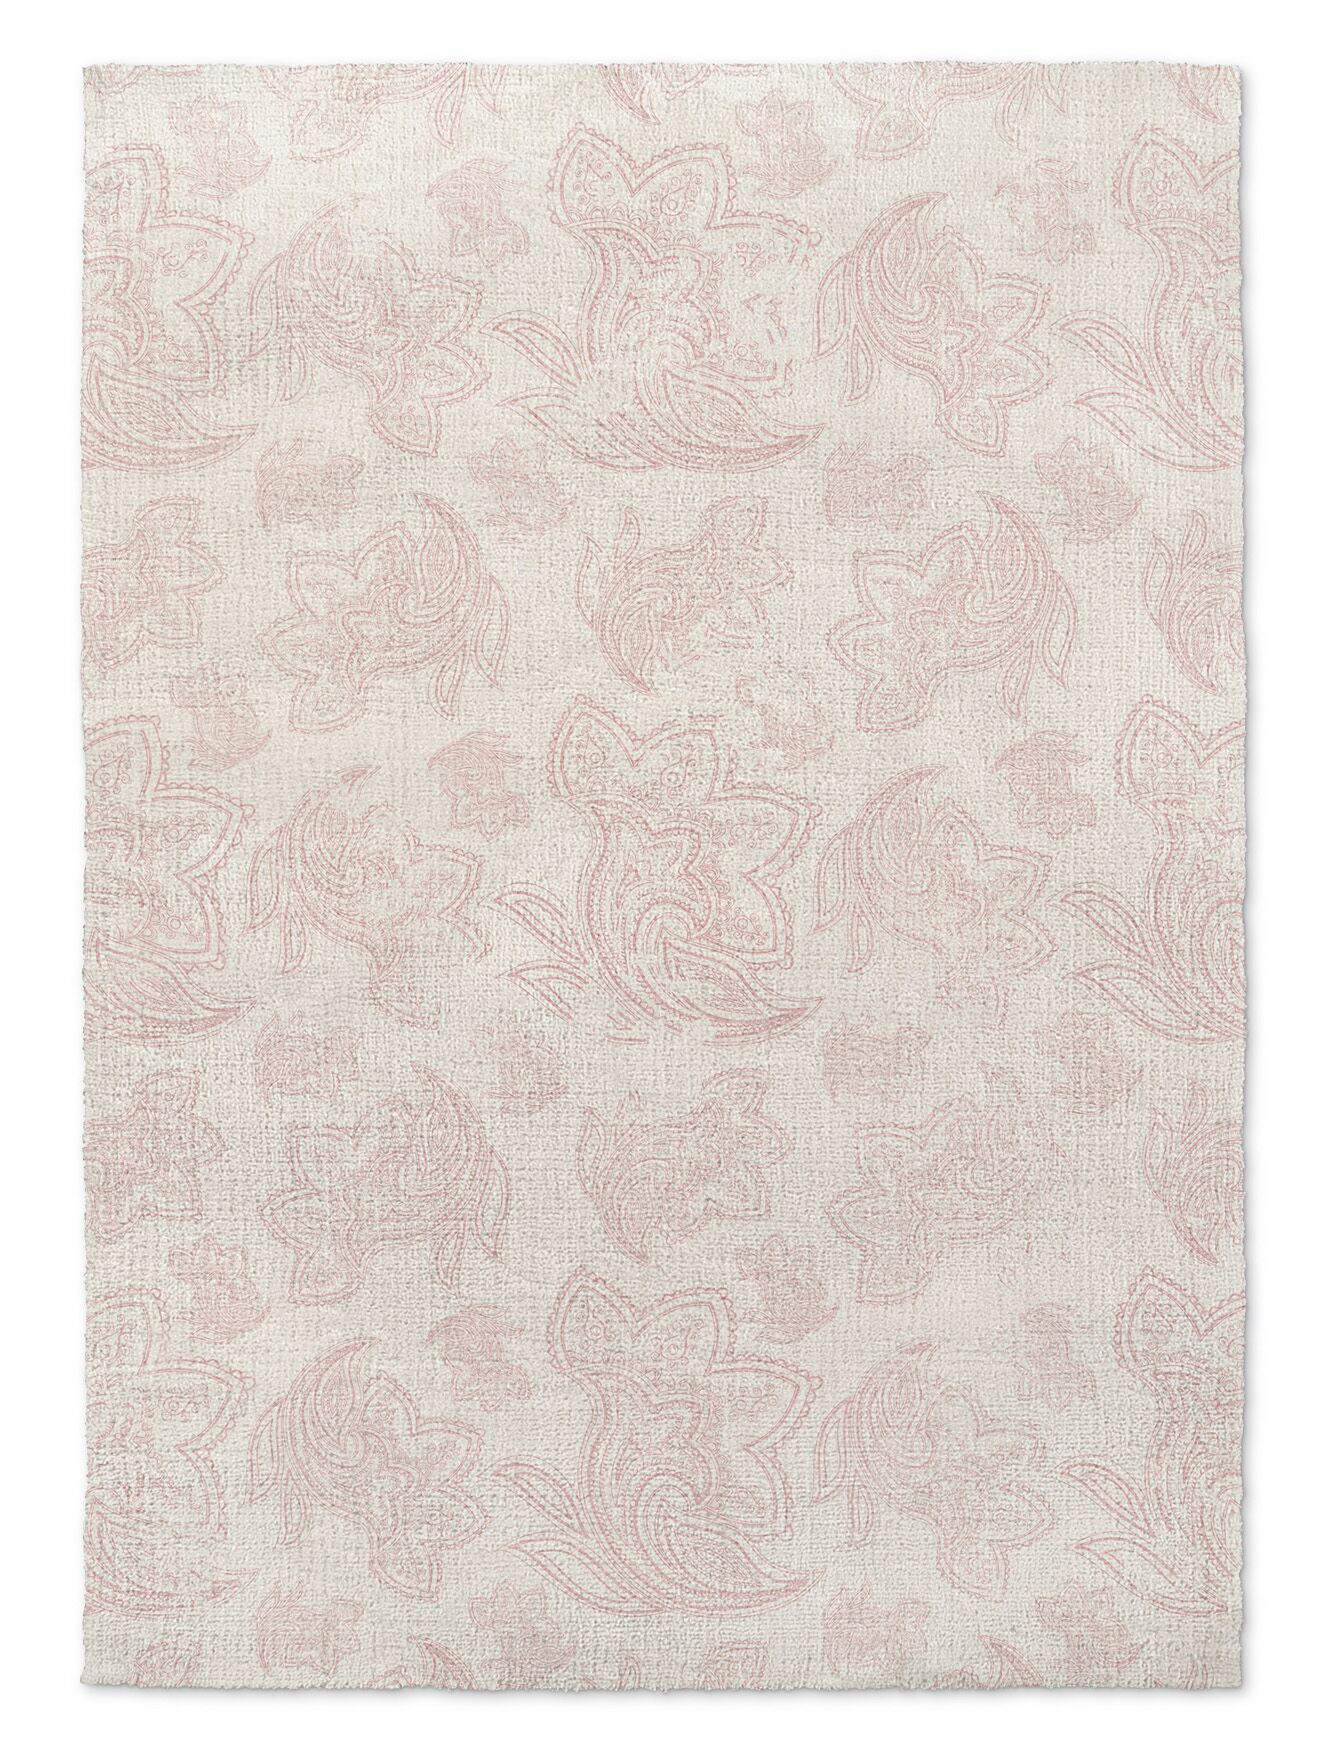 Paisley Destressed Pink Area Rug Rug Size: 2' x 3'